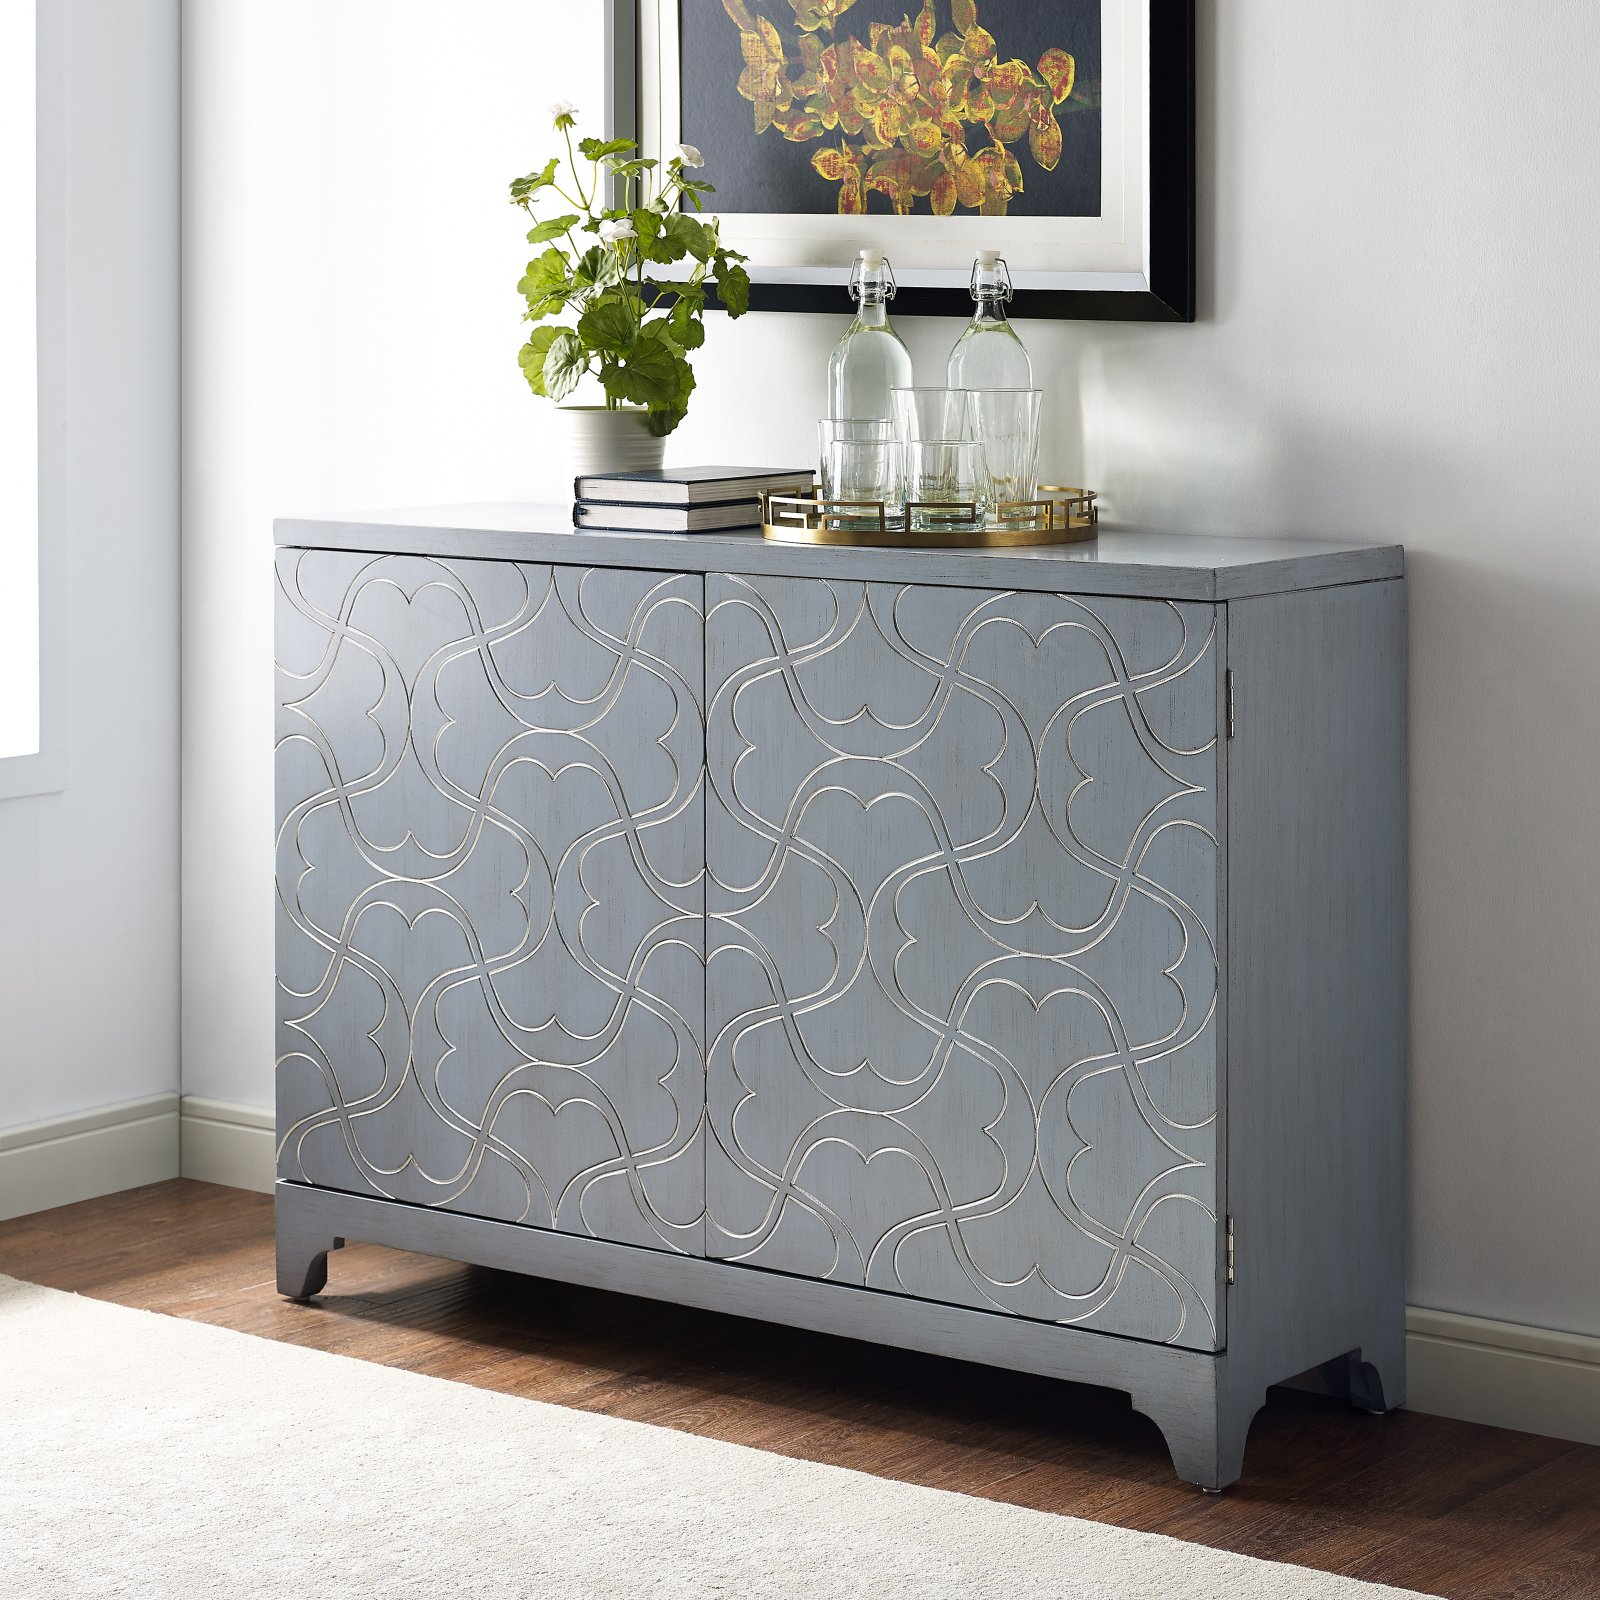 Modern Influenced Two Door Accent Bar Cabinet with Ornate Overlay Carving